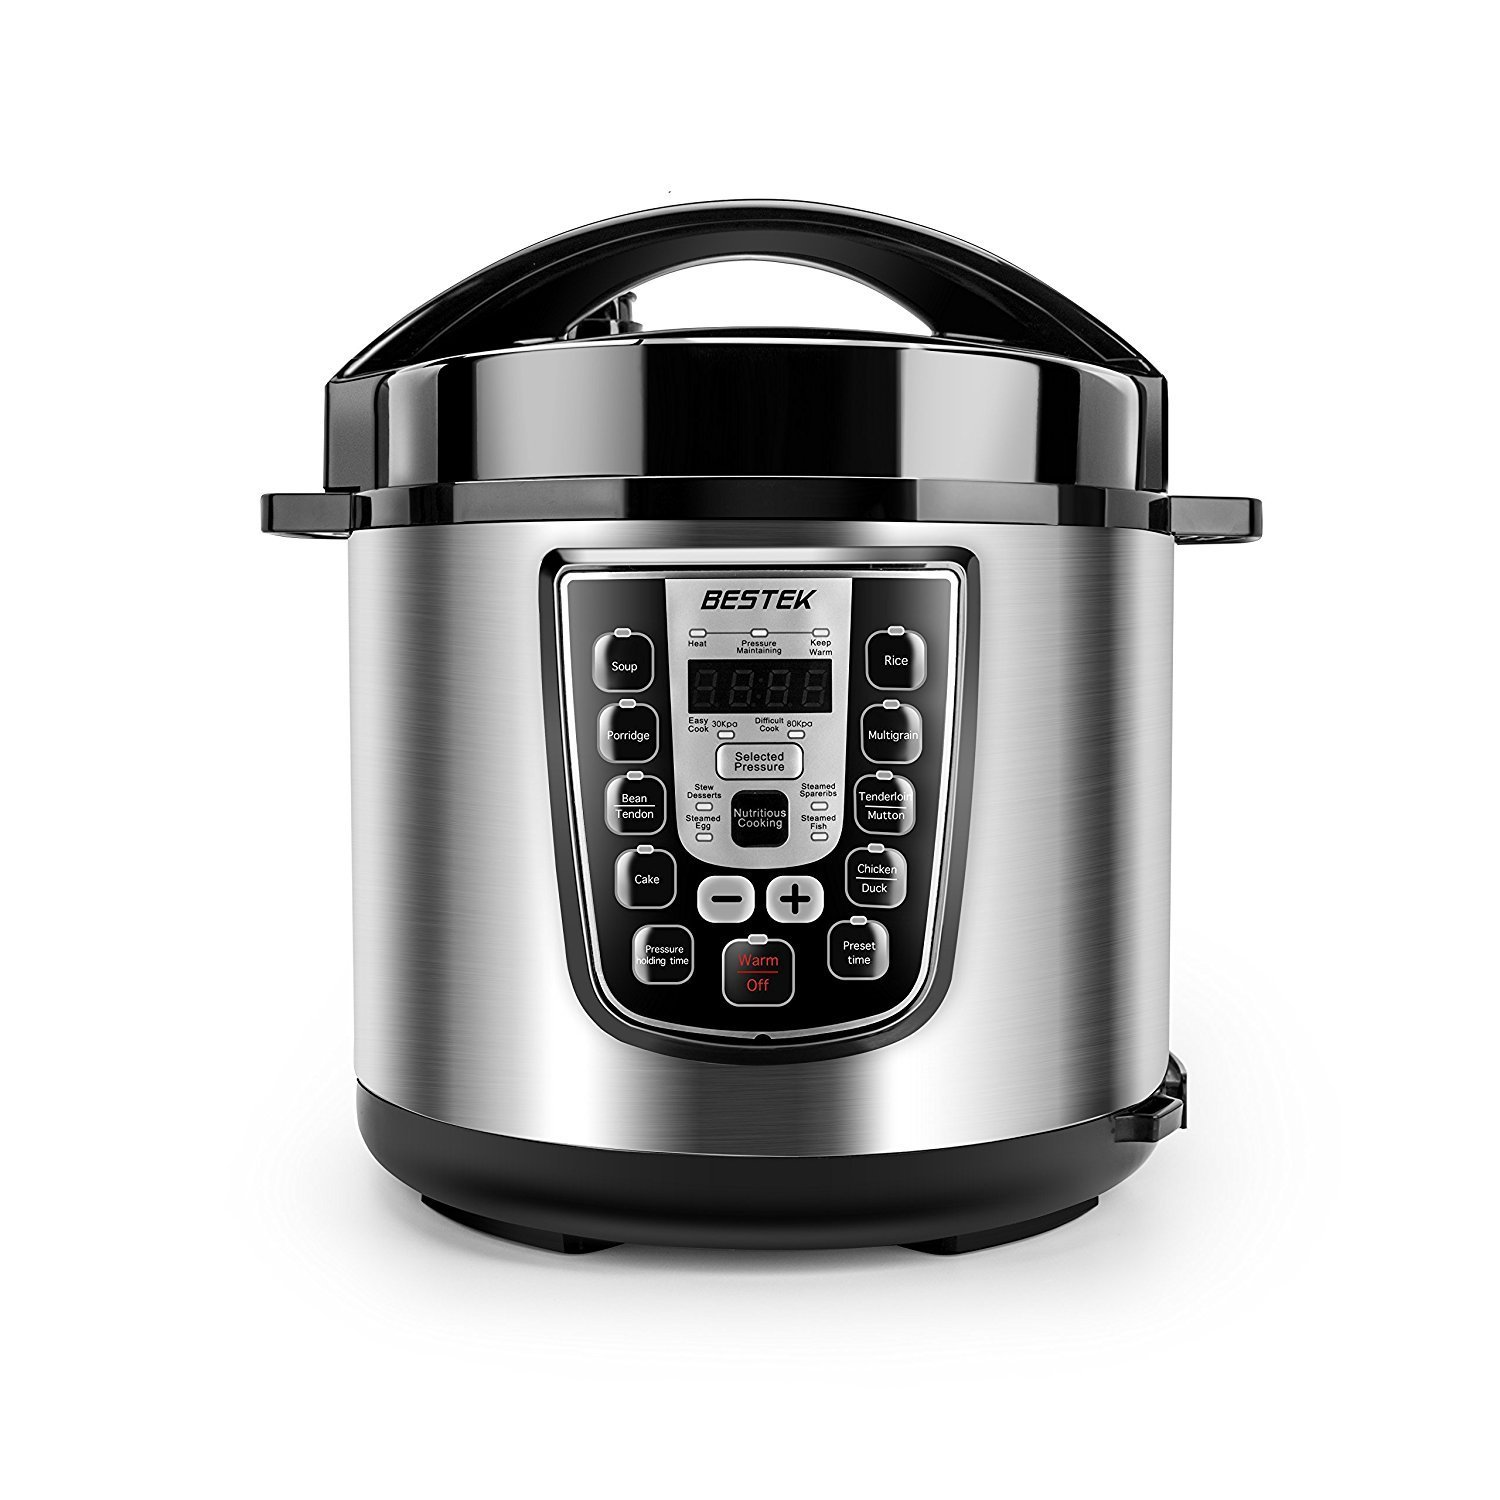 BESTEK 11-in-1 Multi-Functional Power Pressure Cooker Stainless-steel Cooking Pot, 6.3Qt/1000W, UL Certified with 10 Proven Safety Mechanisms